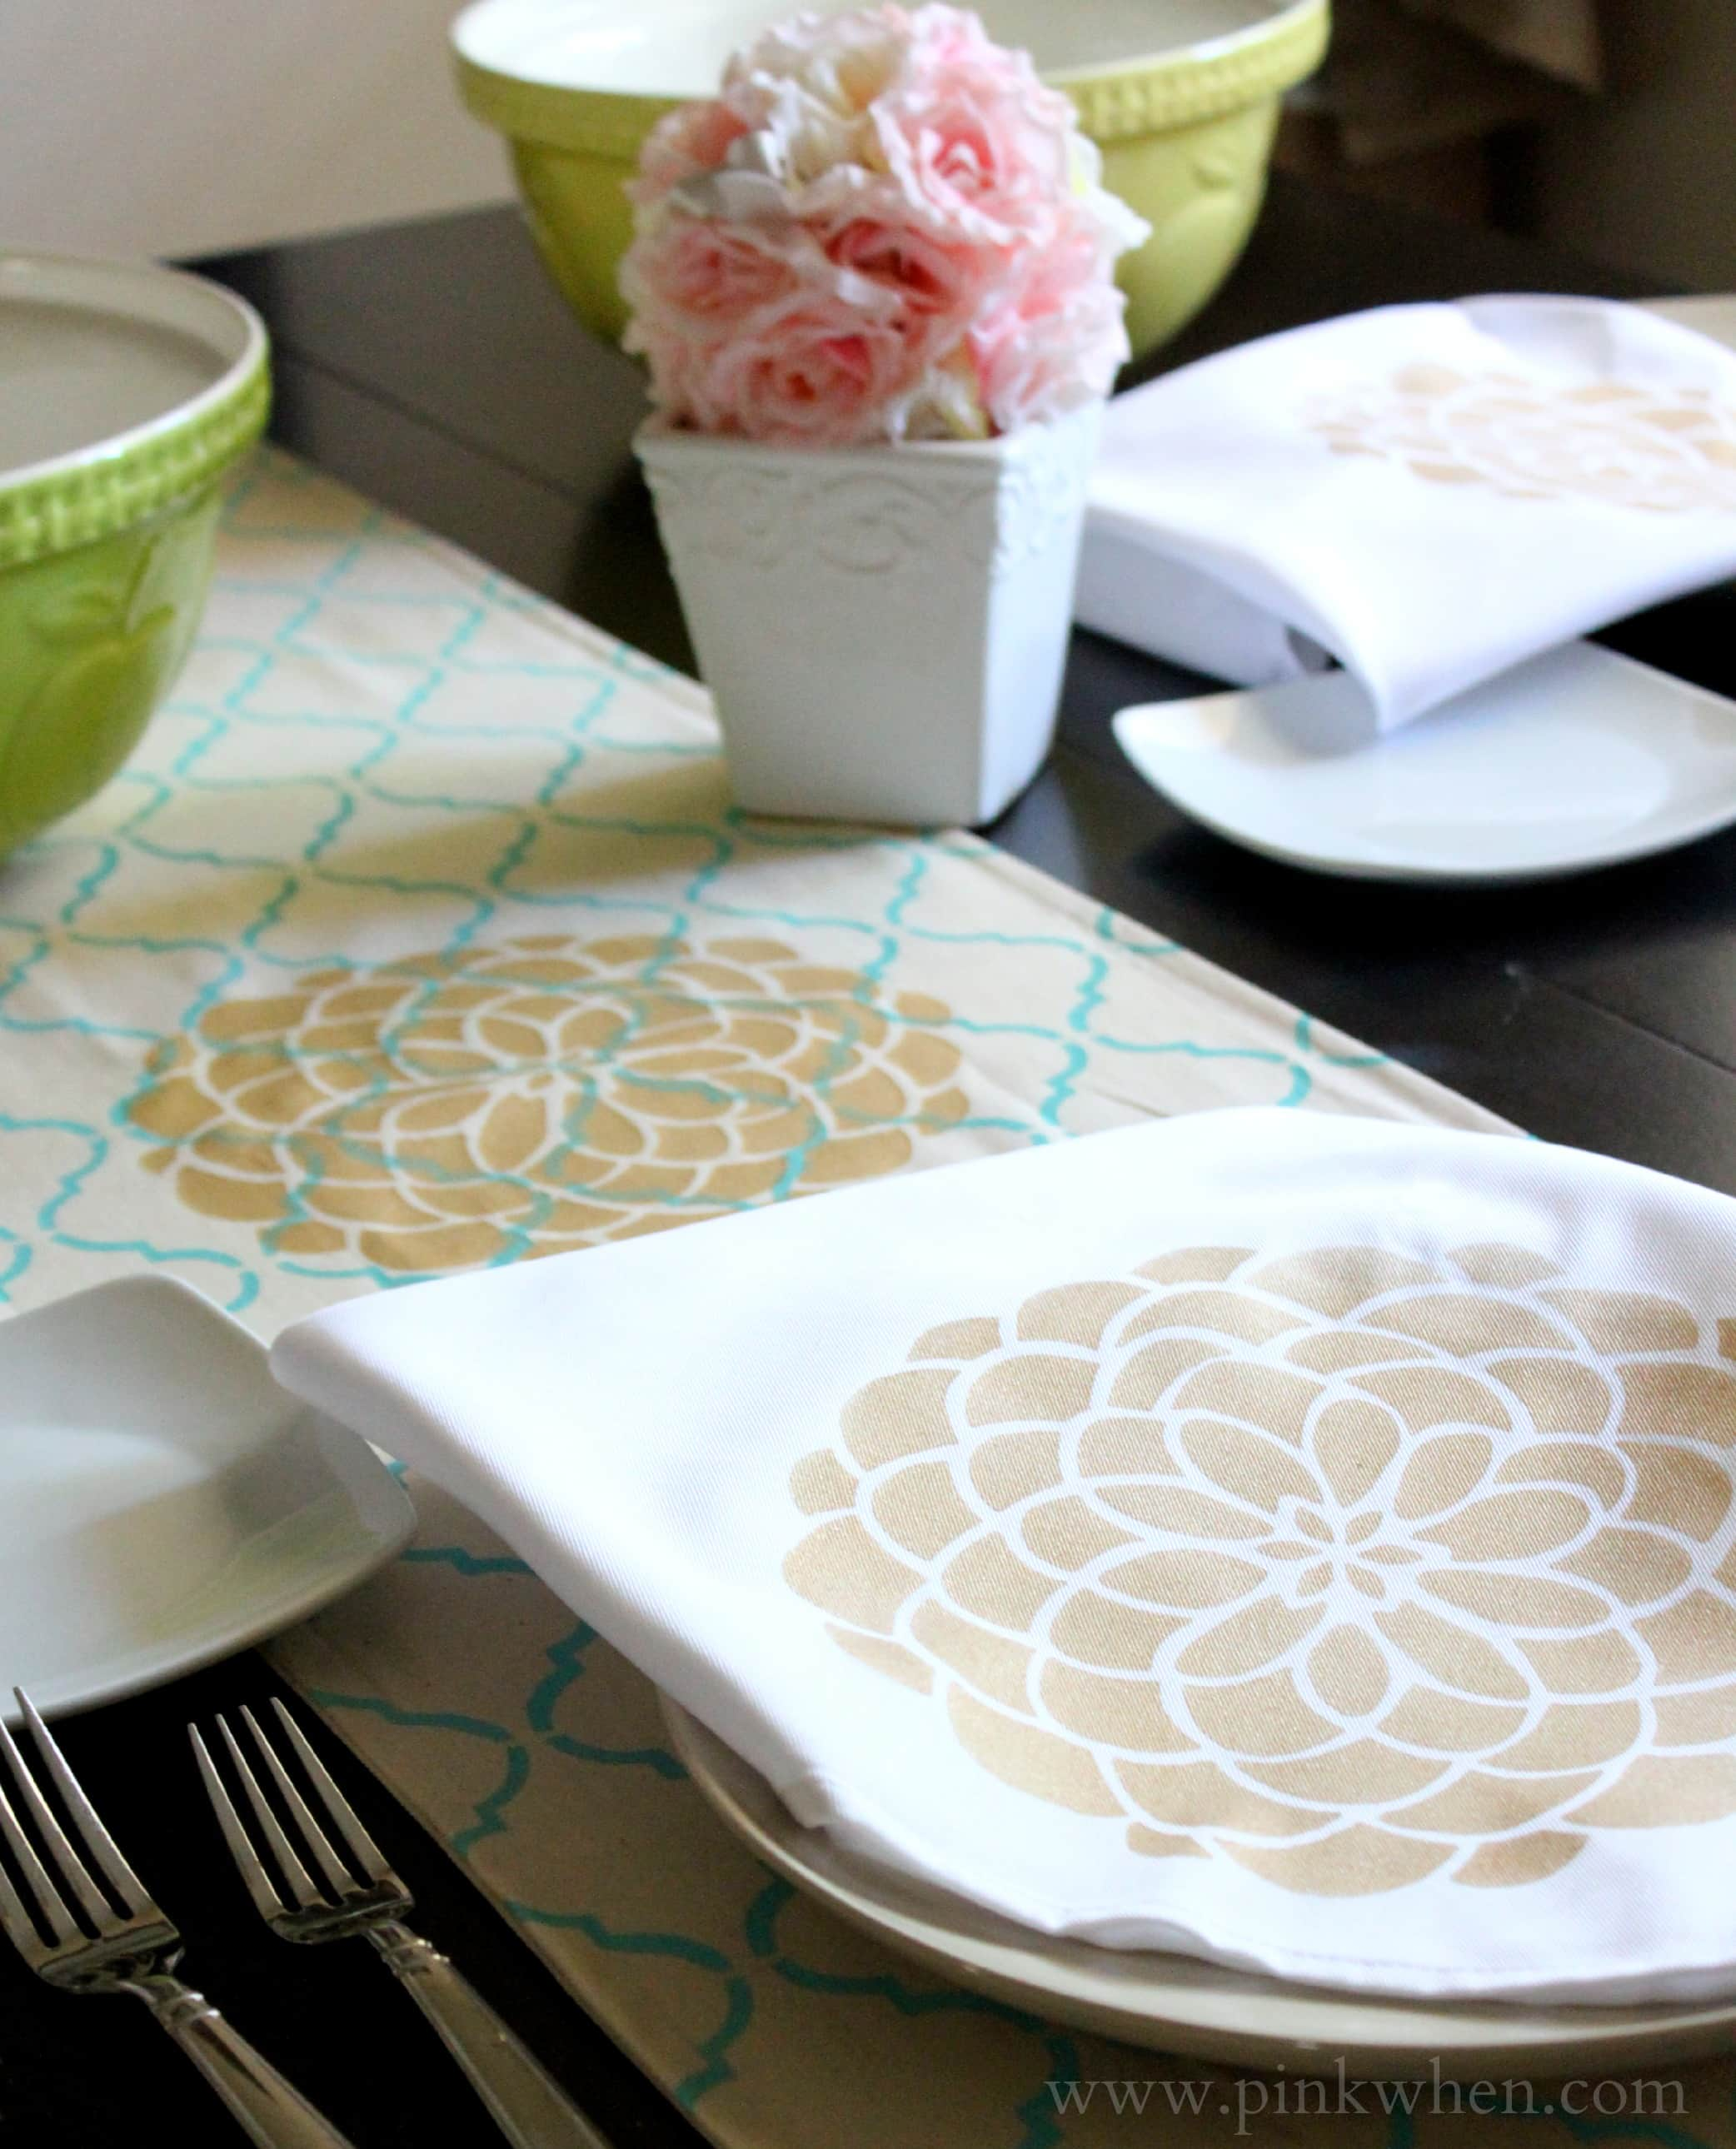 DIY Table & Kitchen Decor PinkWhen